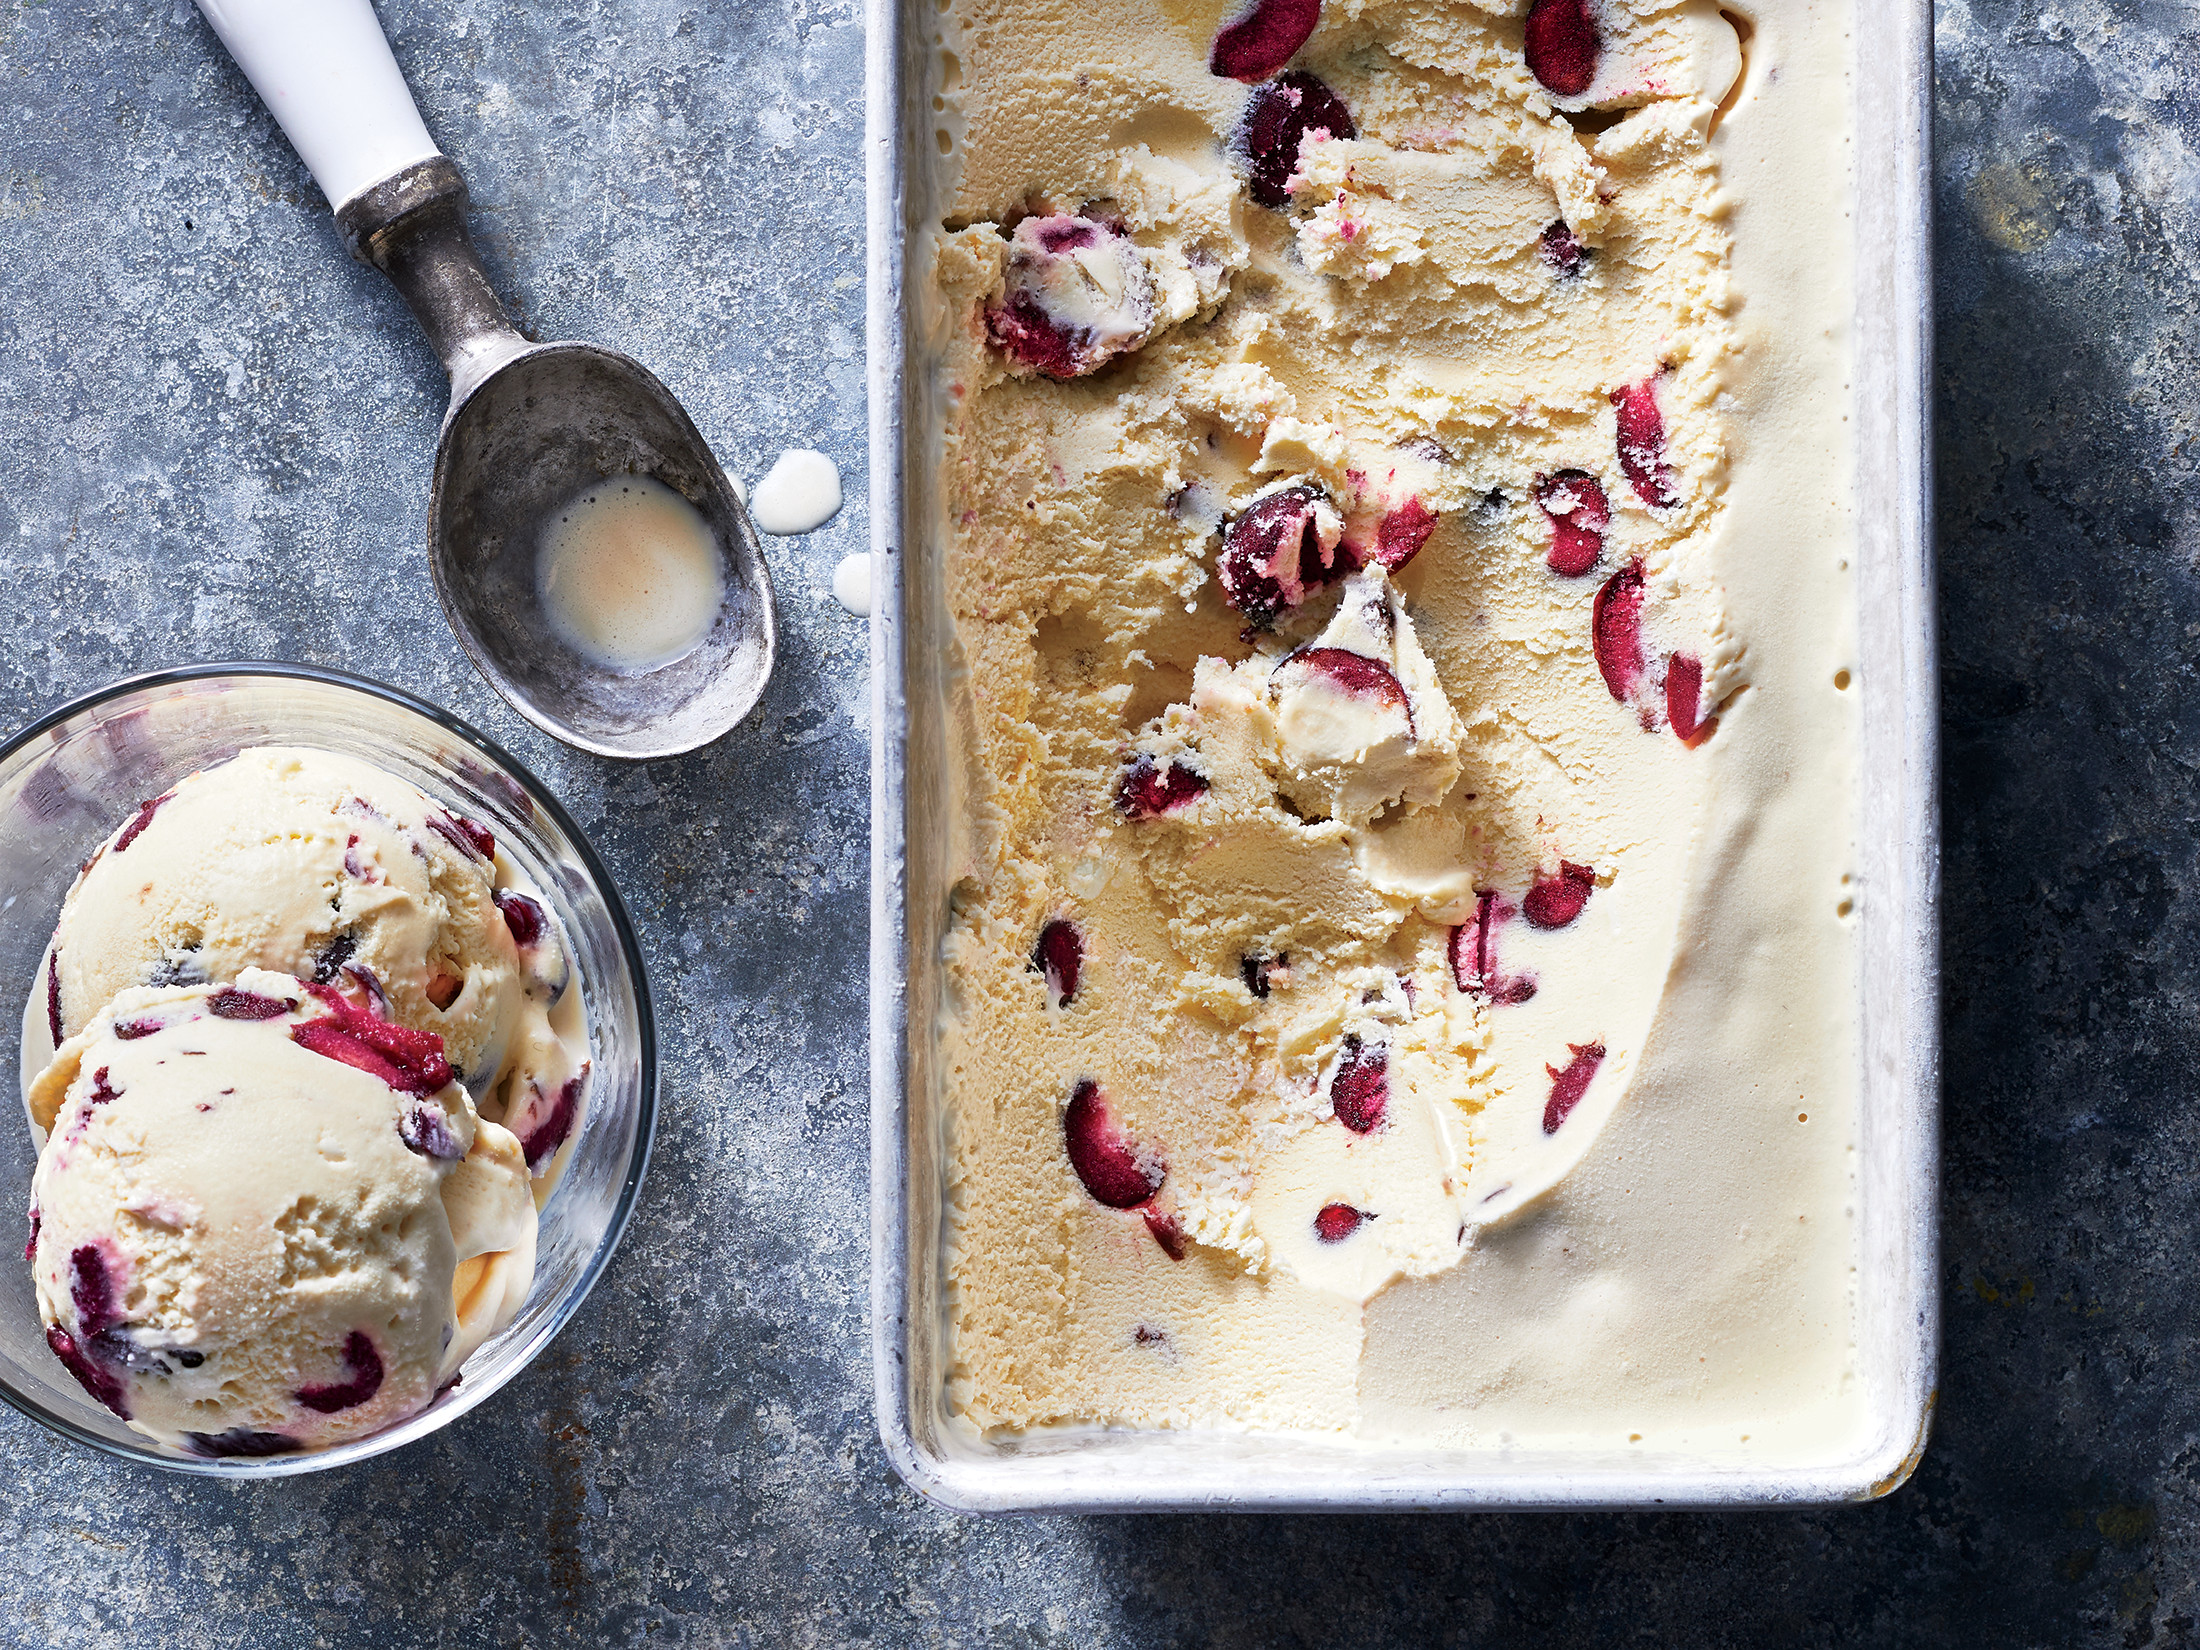 Cherry–Goat Cheese Ice Cream